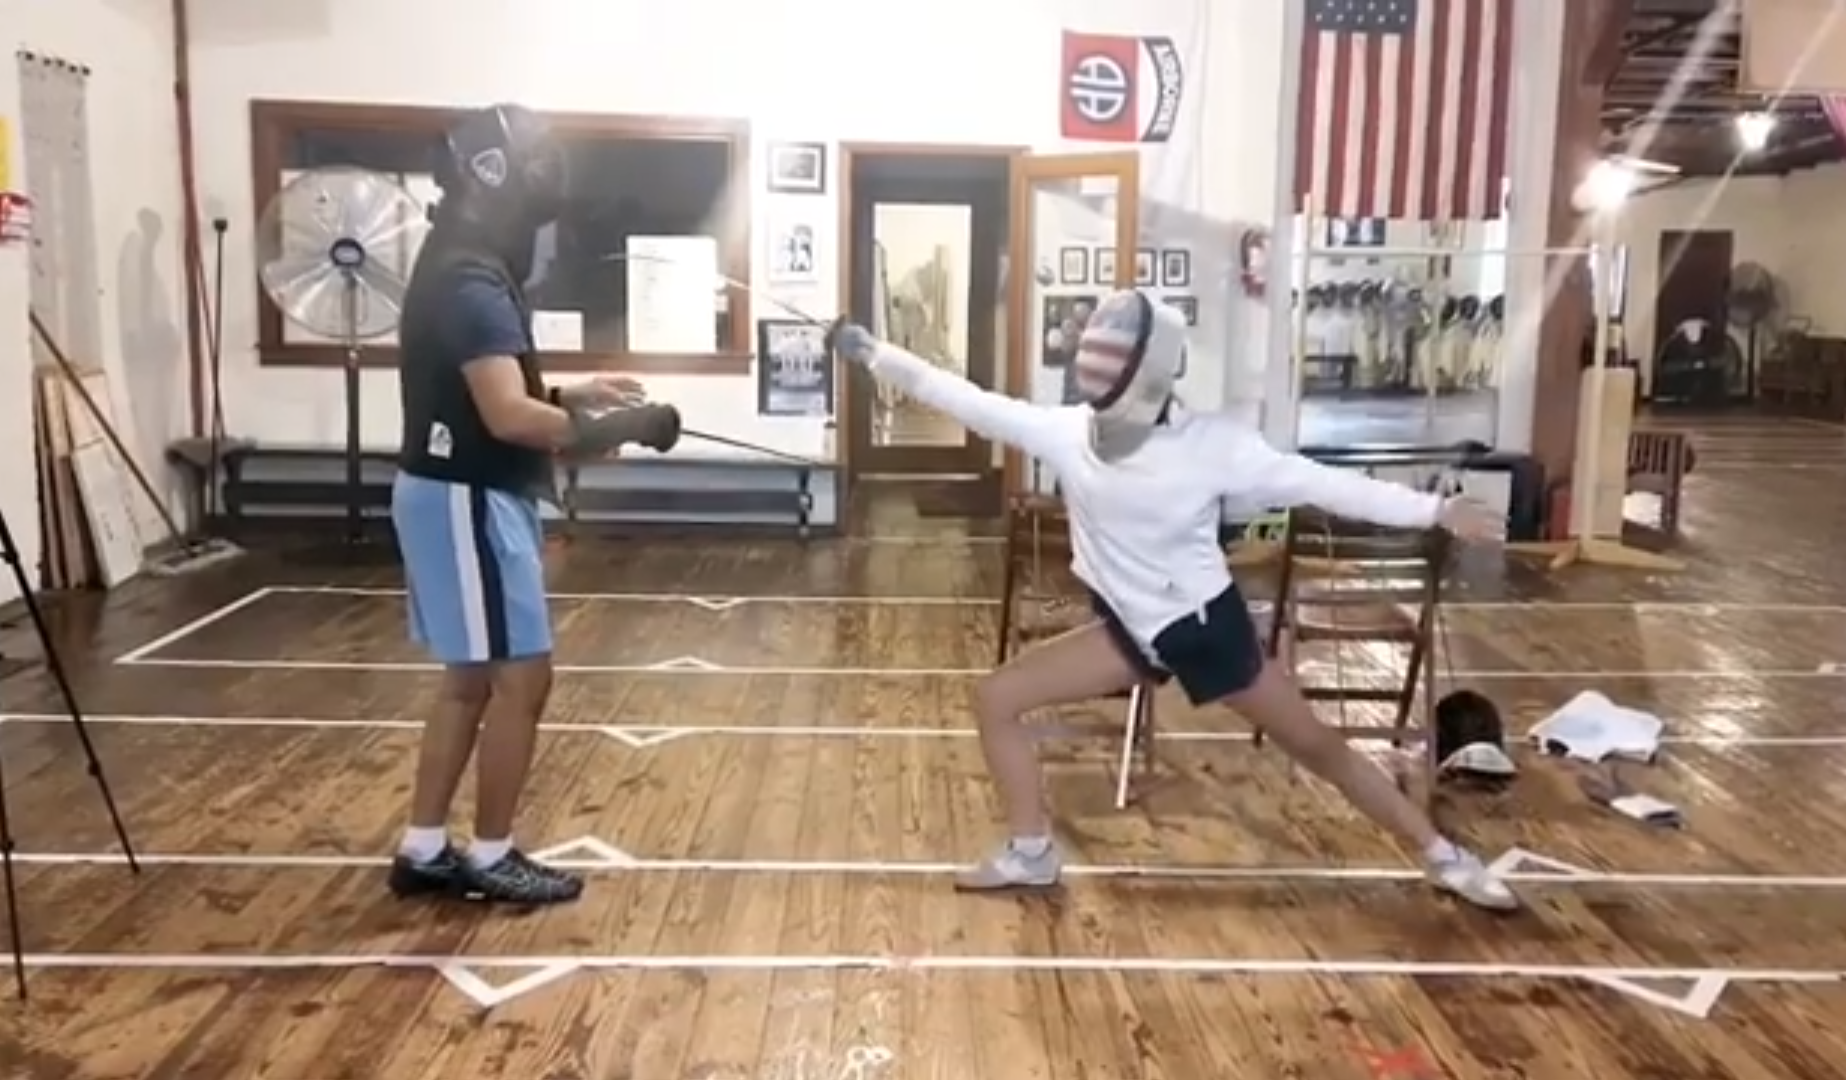 How To Teach Fencing Part 5